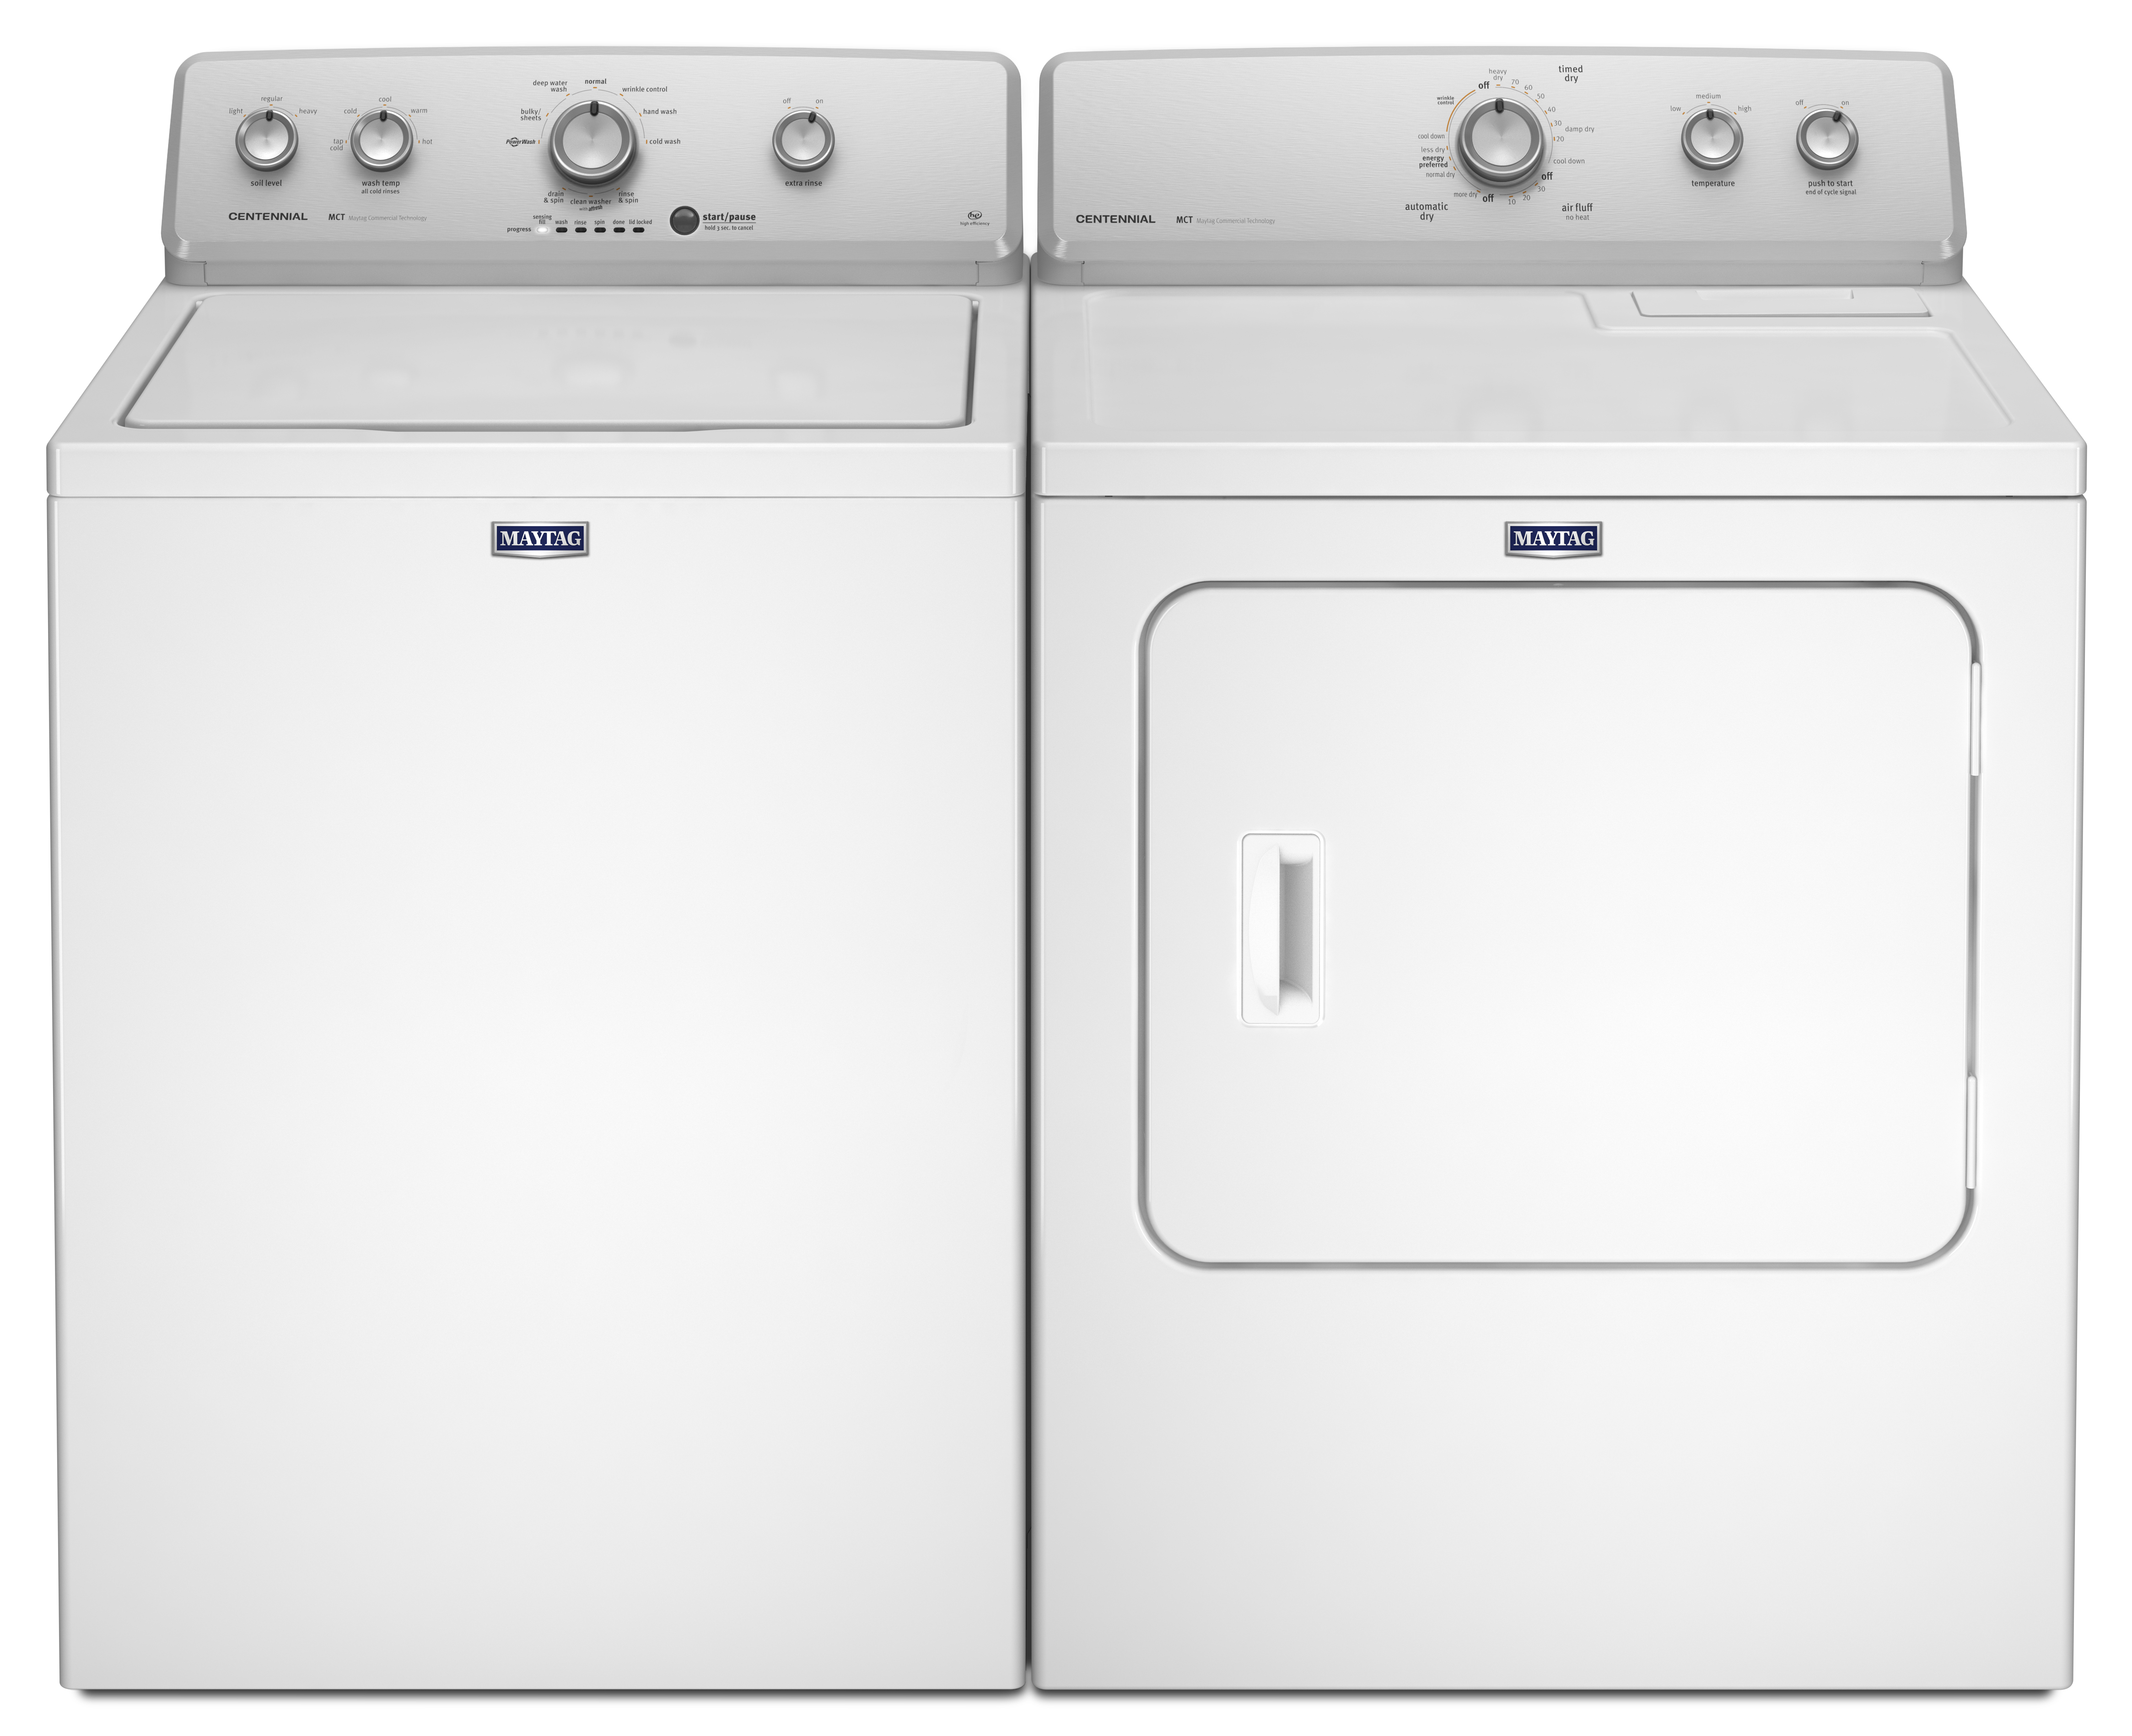 3.6 cu. ft. Top-Load Washer w/PowerWash & 7.0 cu. ft. Gas or Electric Dryer - White